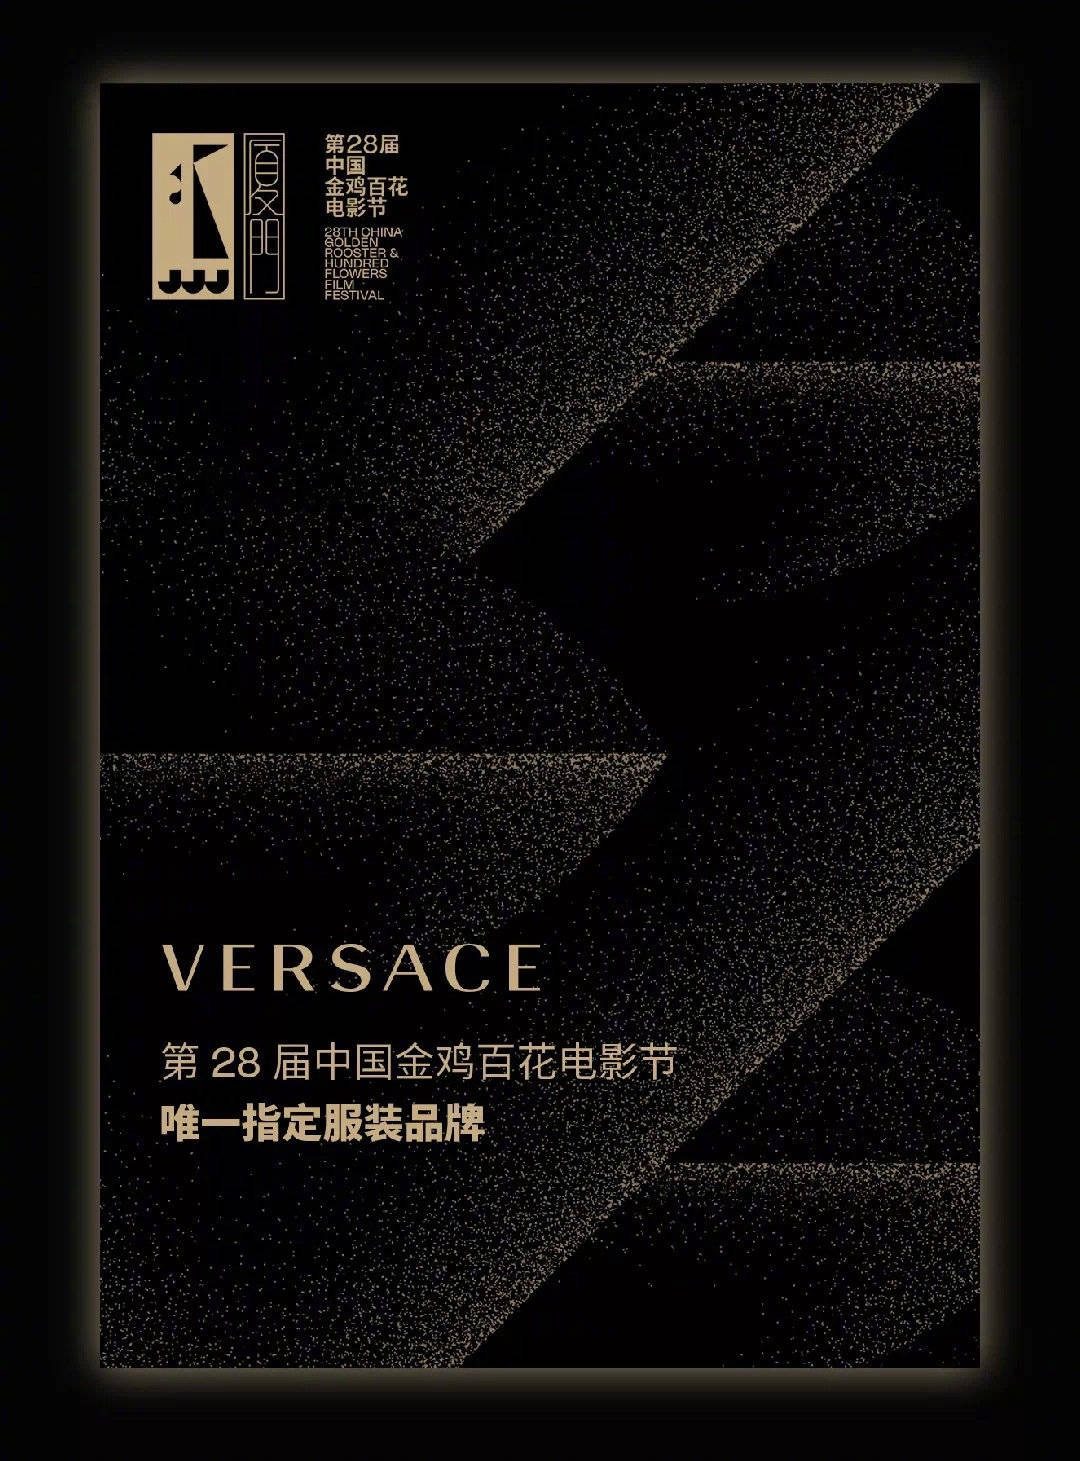 Versace's announcement on the Golden Rooster and Hundred Flowers film festival sponsorship